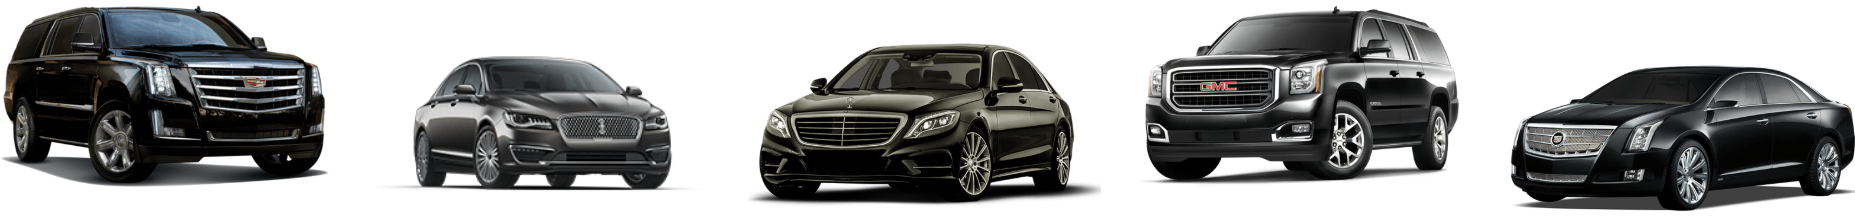 Amazing Information On Airport Transfer Paris